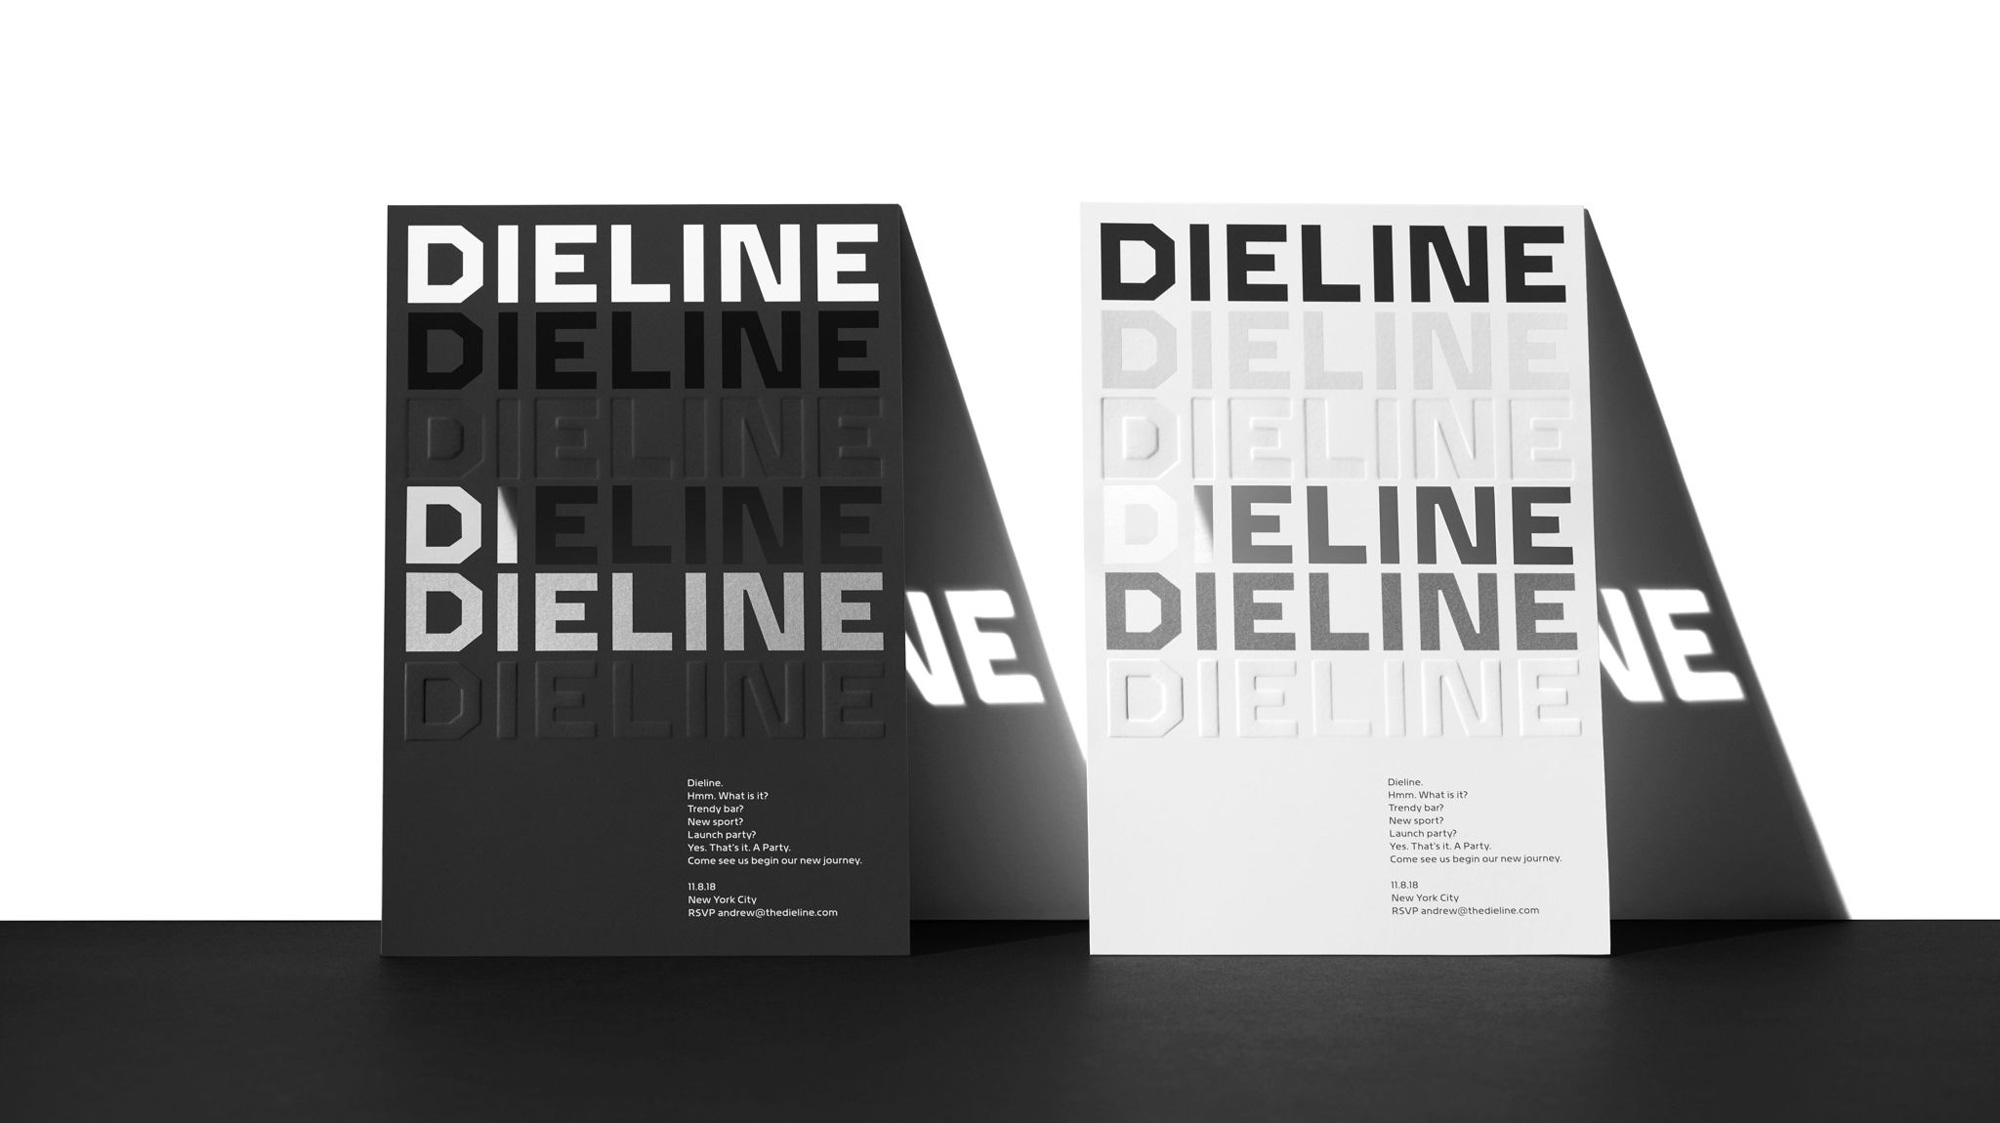 New Logo and Identity for Dieline by Jones Knowles Ritchie